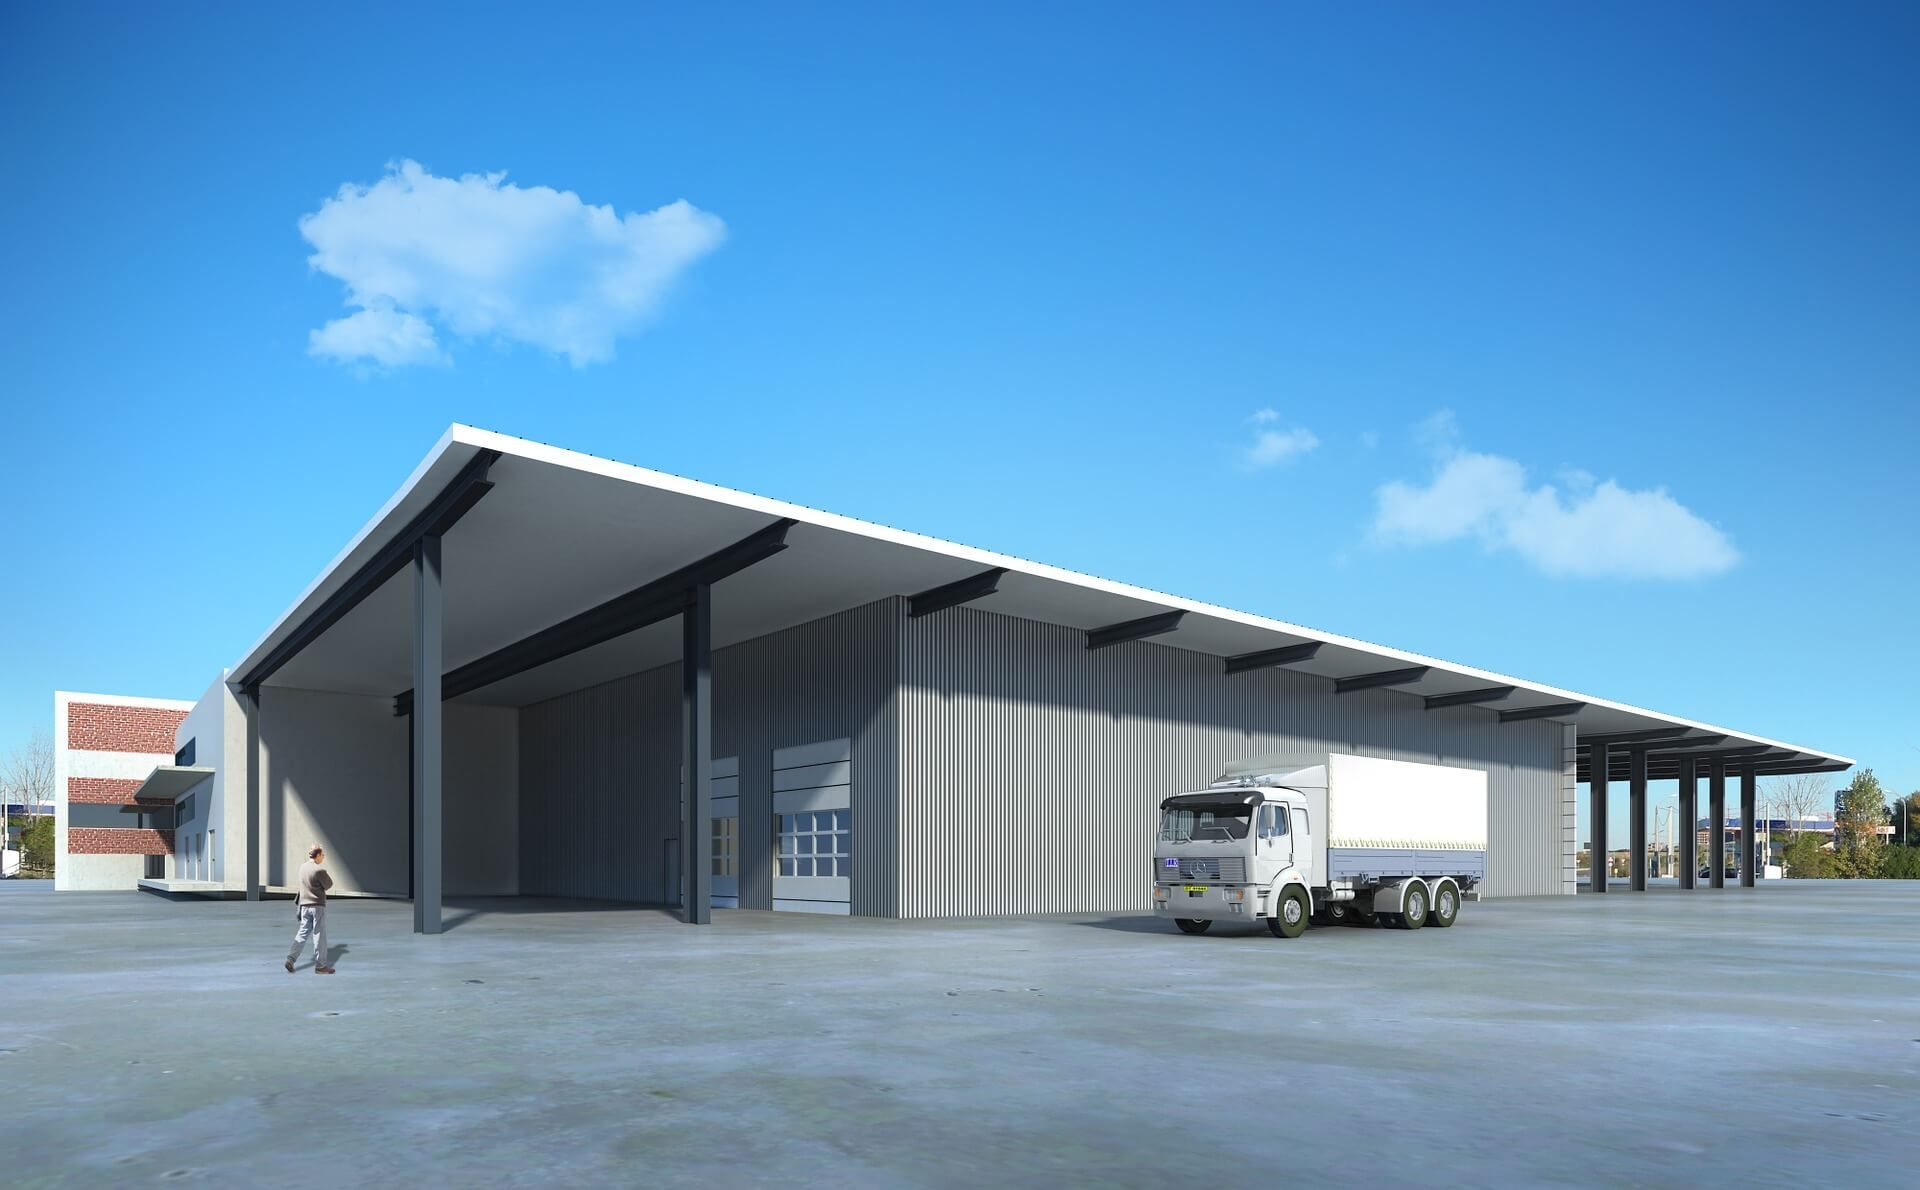 Click Here To View Large Storage Space And Warehouses In Dubai Http Bit Ly 1usombg Wa Commercial Steel Buildings Steel Structure Buildings Steel Buildings